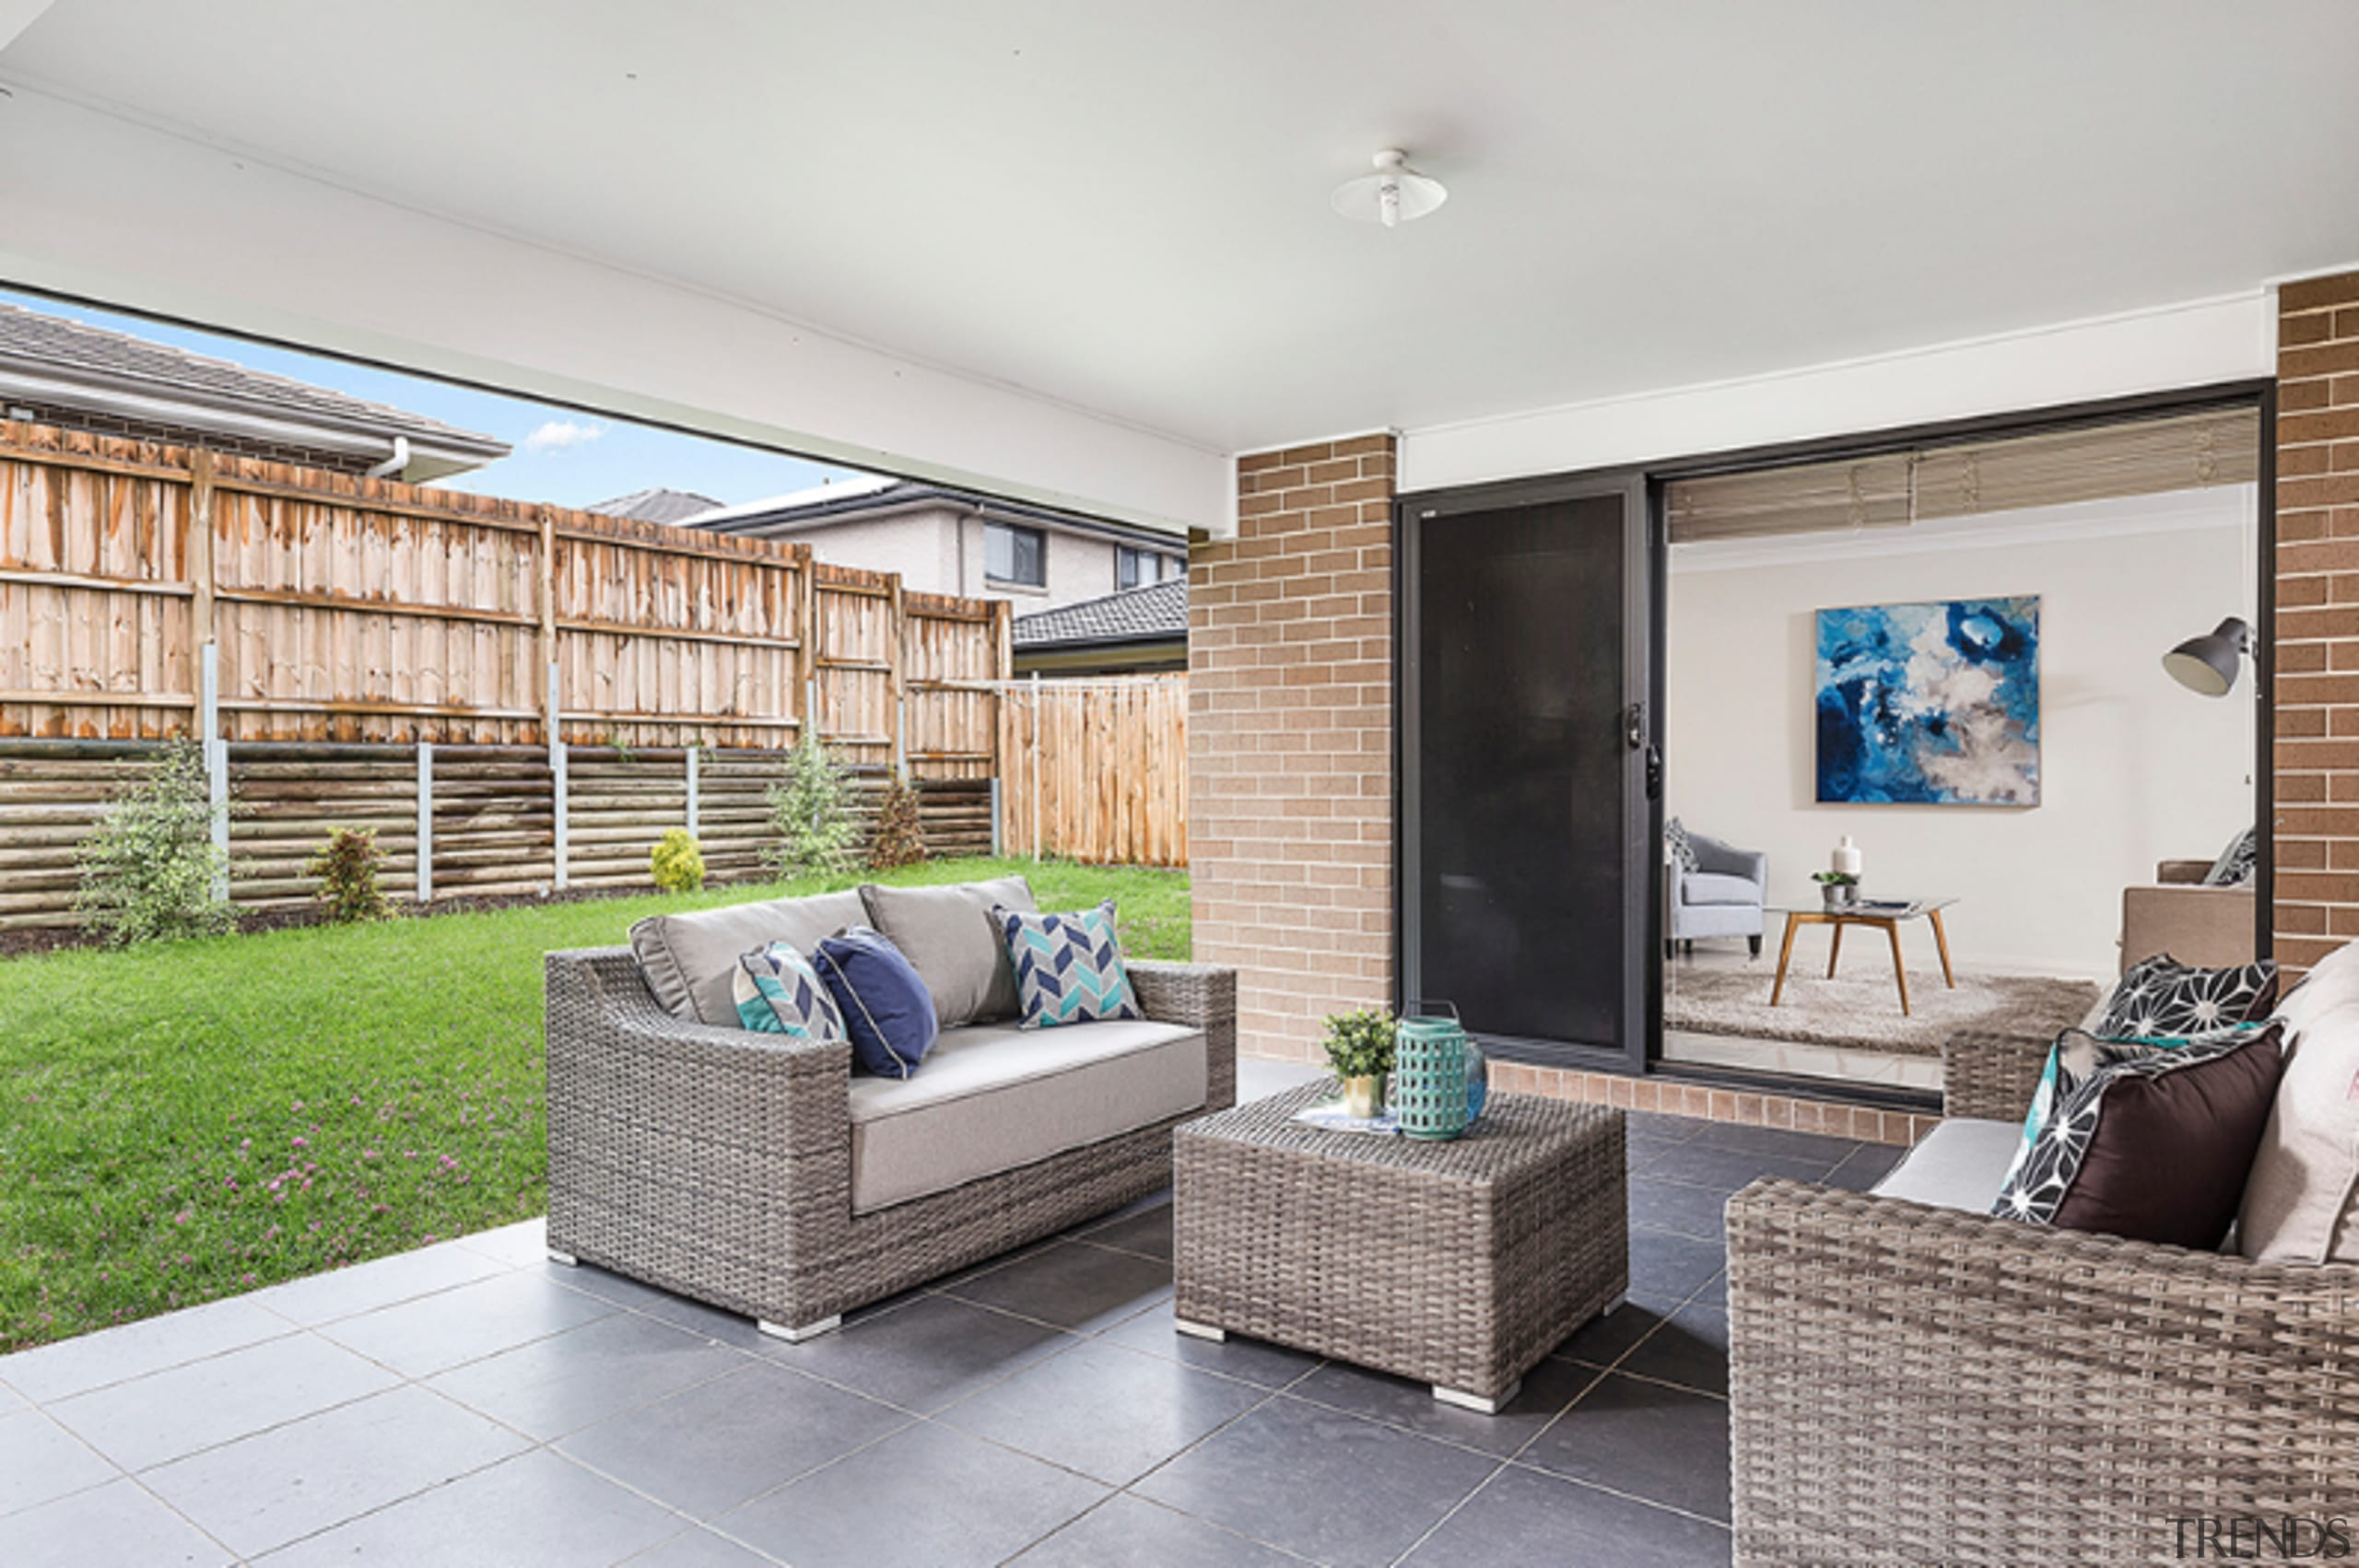 How to achieve an irresistible outdoor living space apartment, building, ceiling, coffee table, condominium, estate, floor, furniture, home, house, interior design, living room, property, real estate, room, table, wall, gray